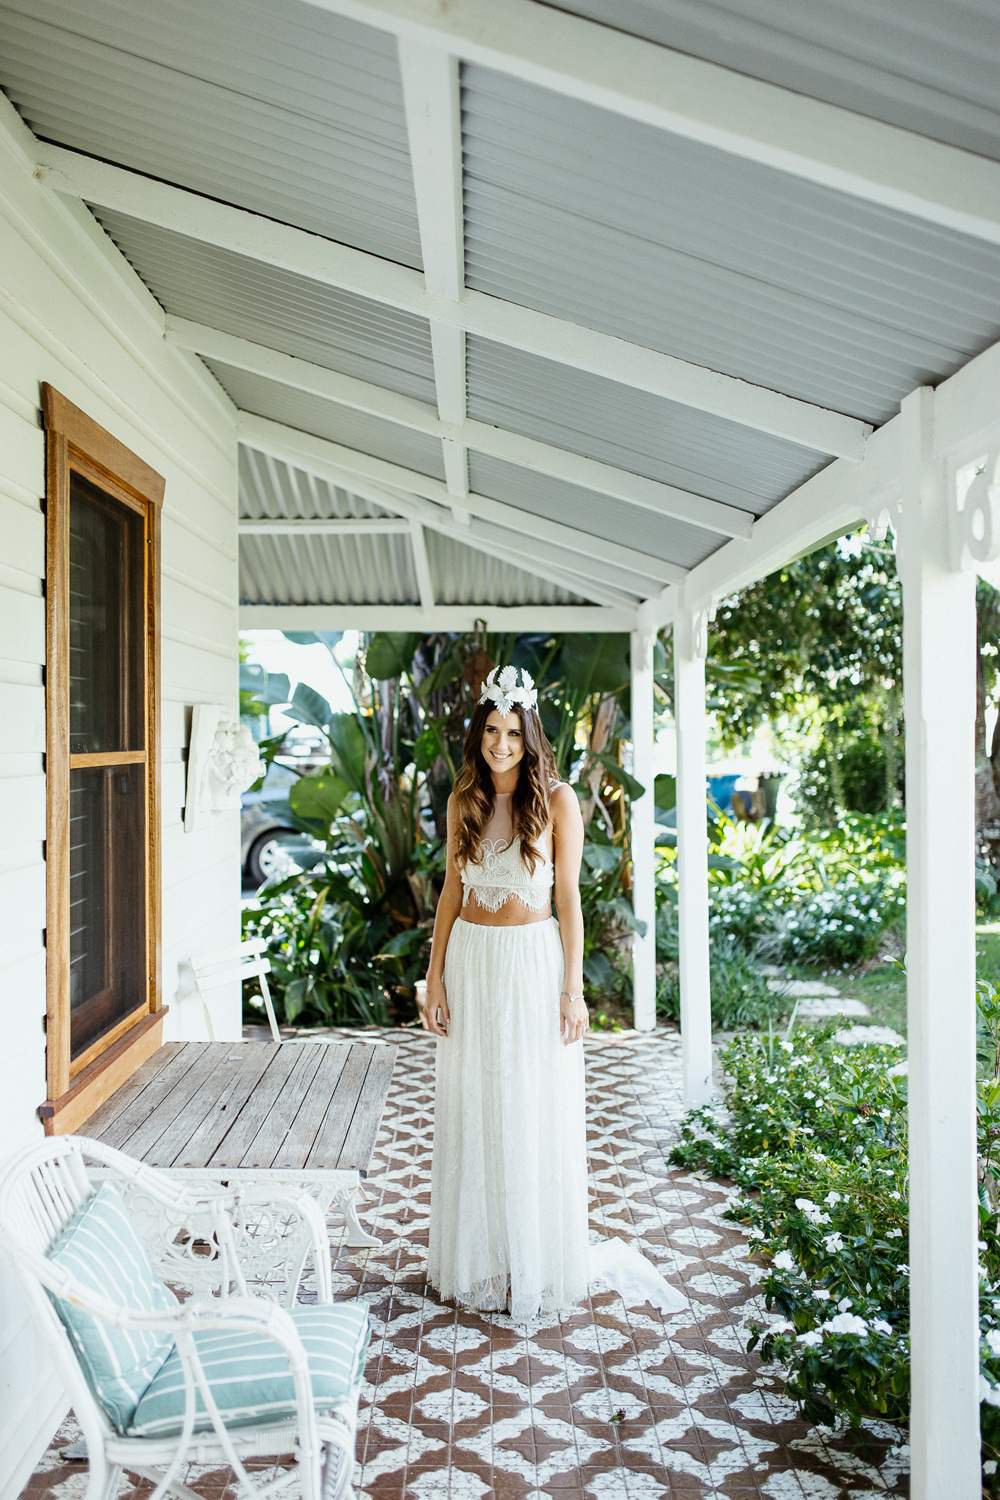 887-Byron-Bay-Wedding-Photographer-Carly-Tia-Photography.jpg